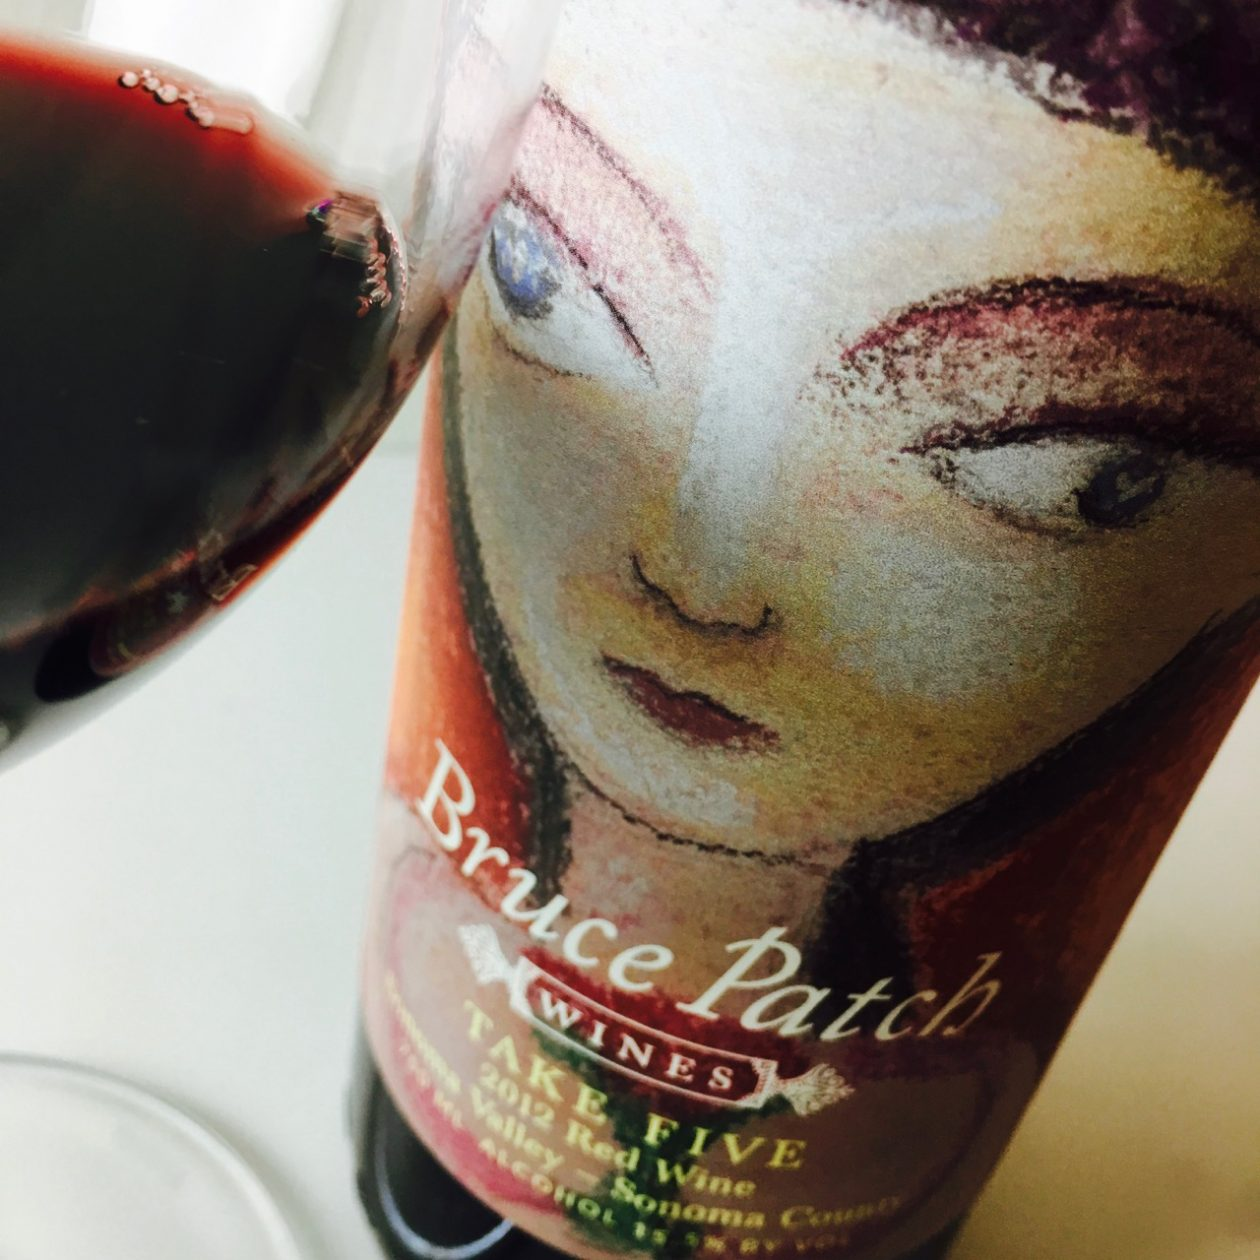 2012 Bruce Patch Wines Red Blend Take Five Sonoma Valley, Sonoma County